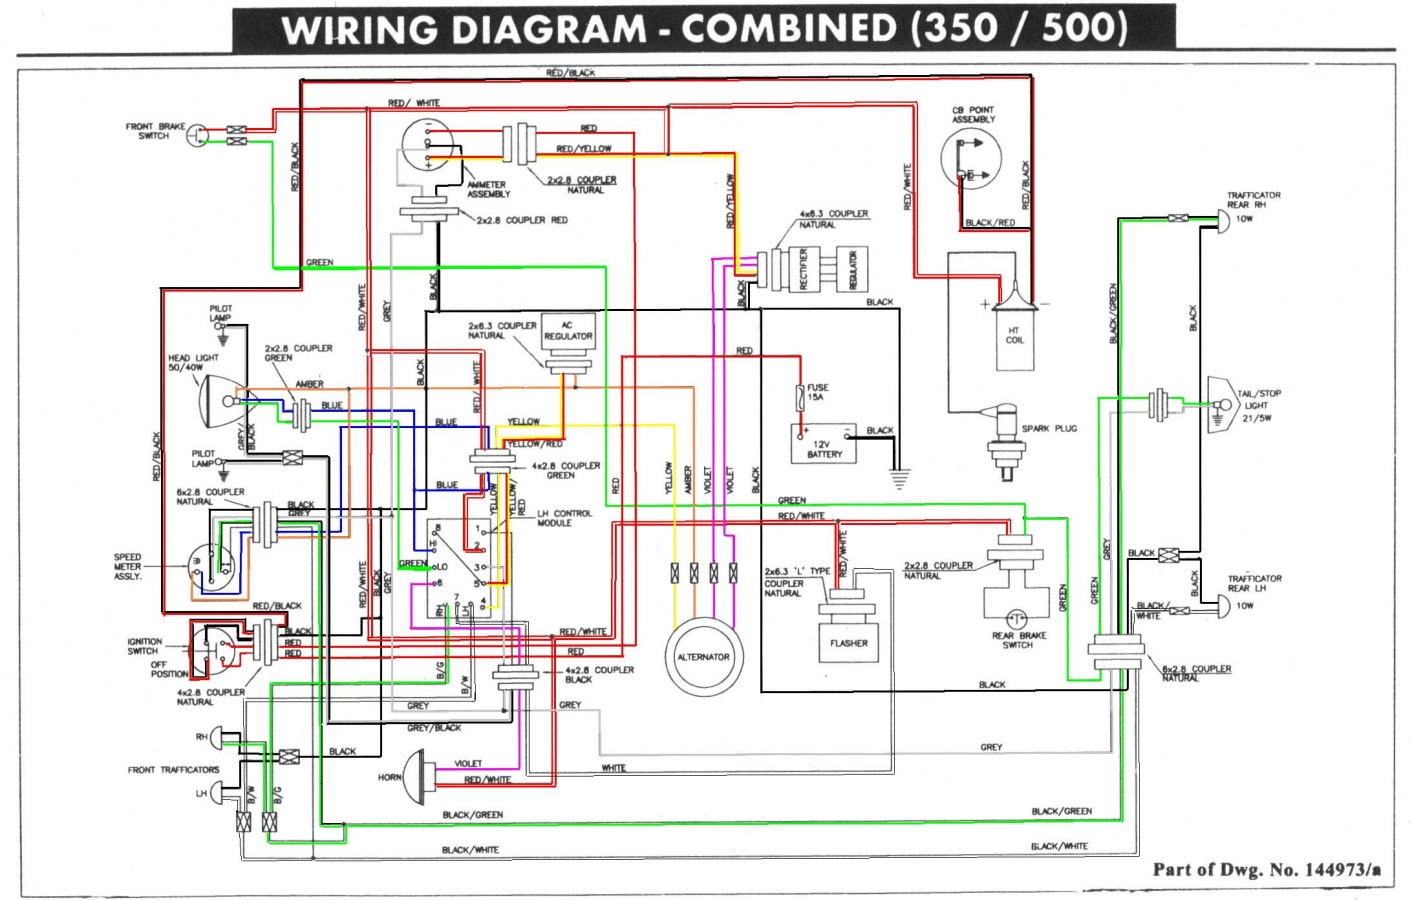 diagrams 875667 royal enfield bullet wiring diagram royal royal enfield wiring diagram free at webbmarketing.co